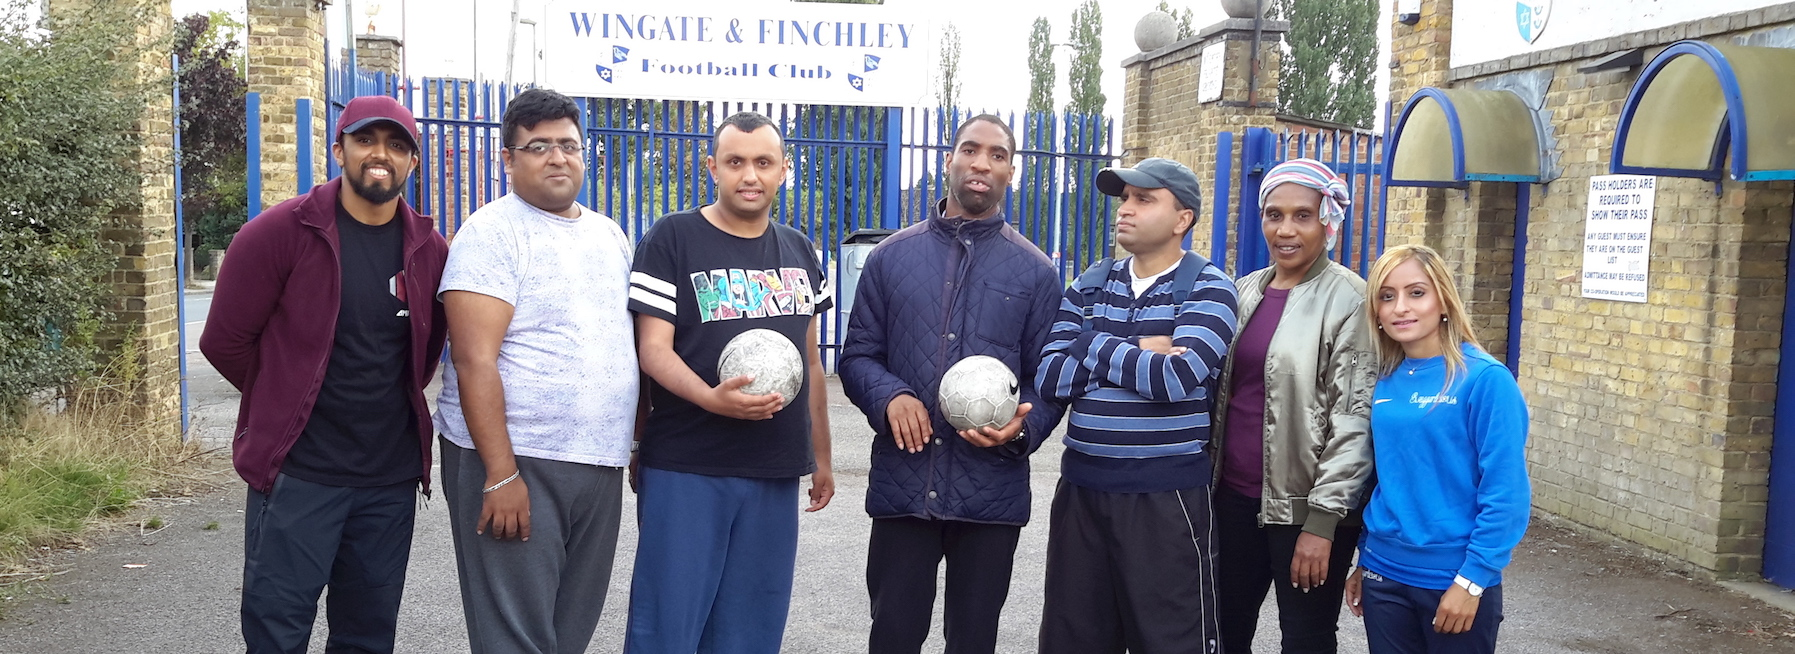 Wingate and Finchley FC Disabled Fans Forum